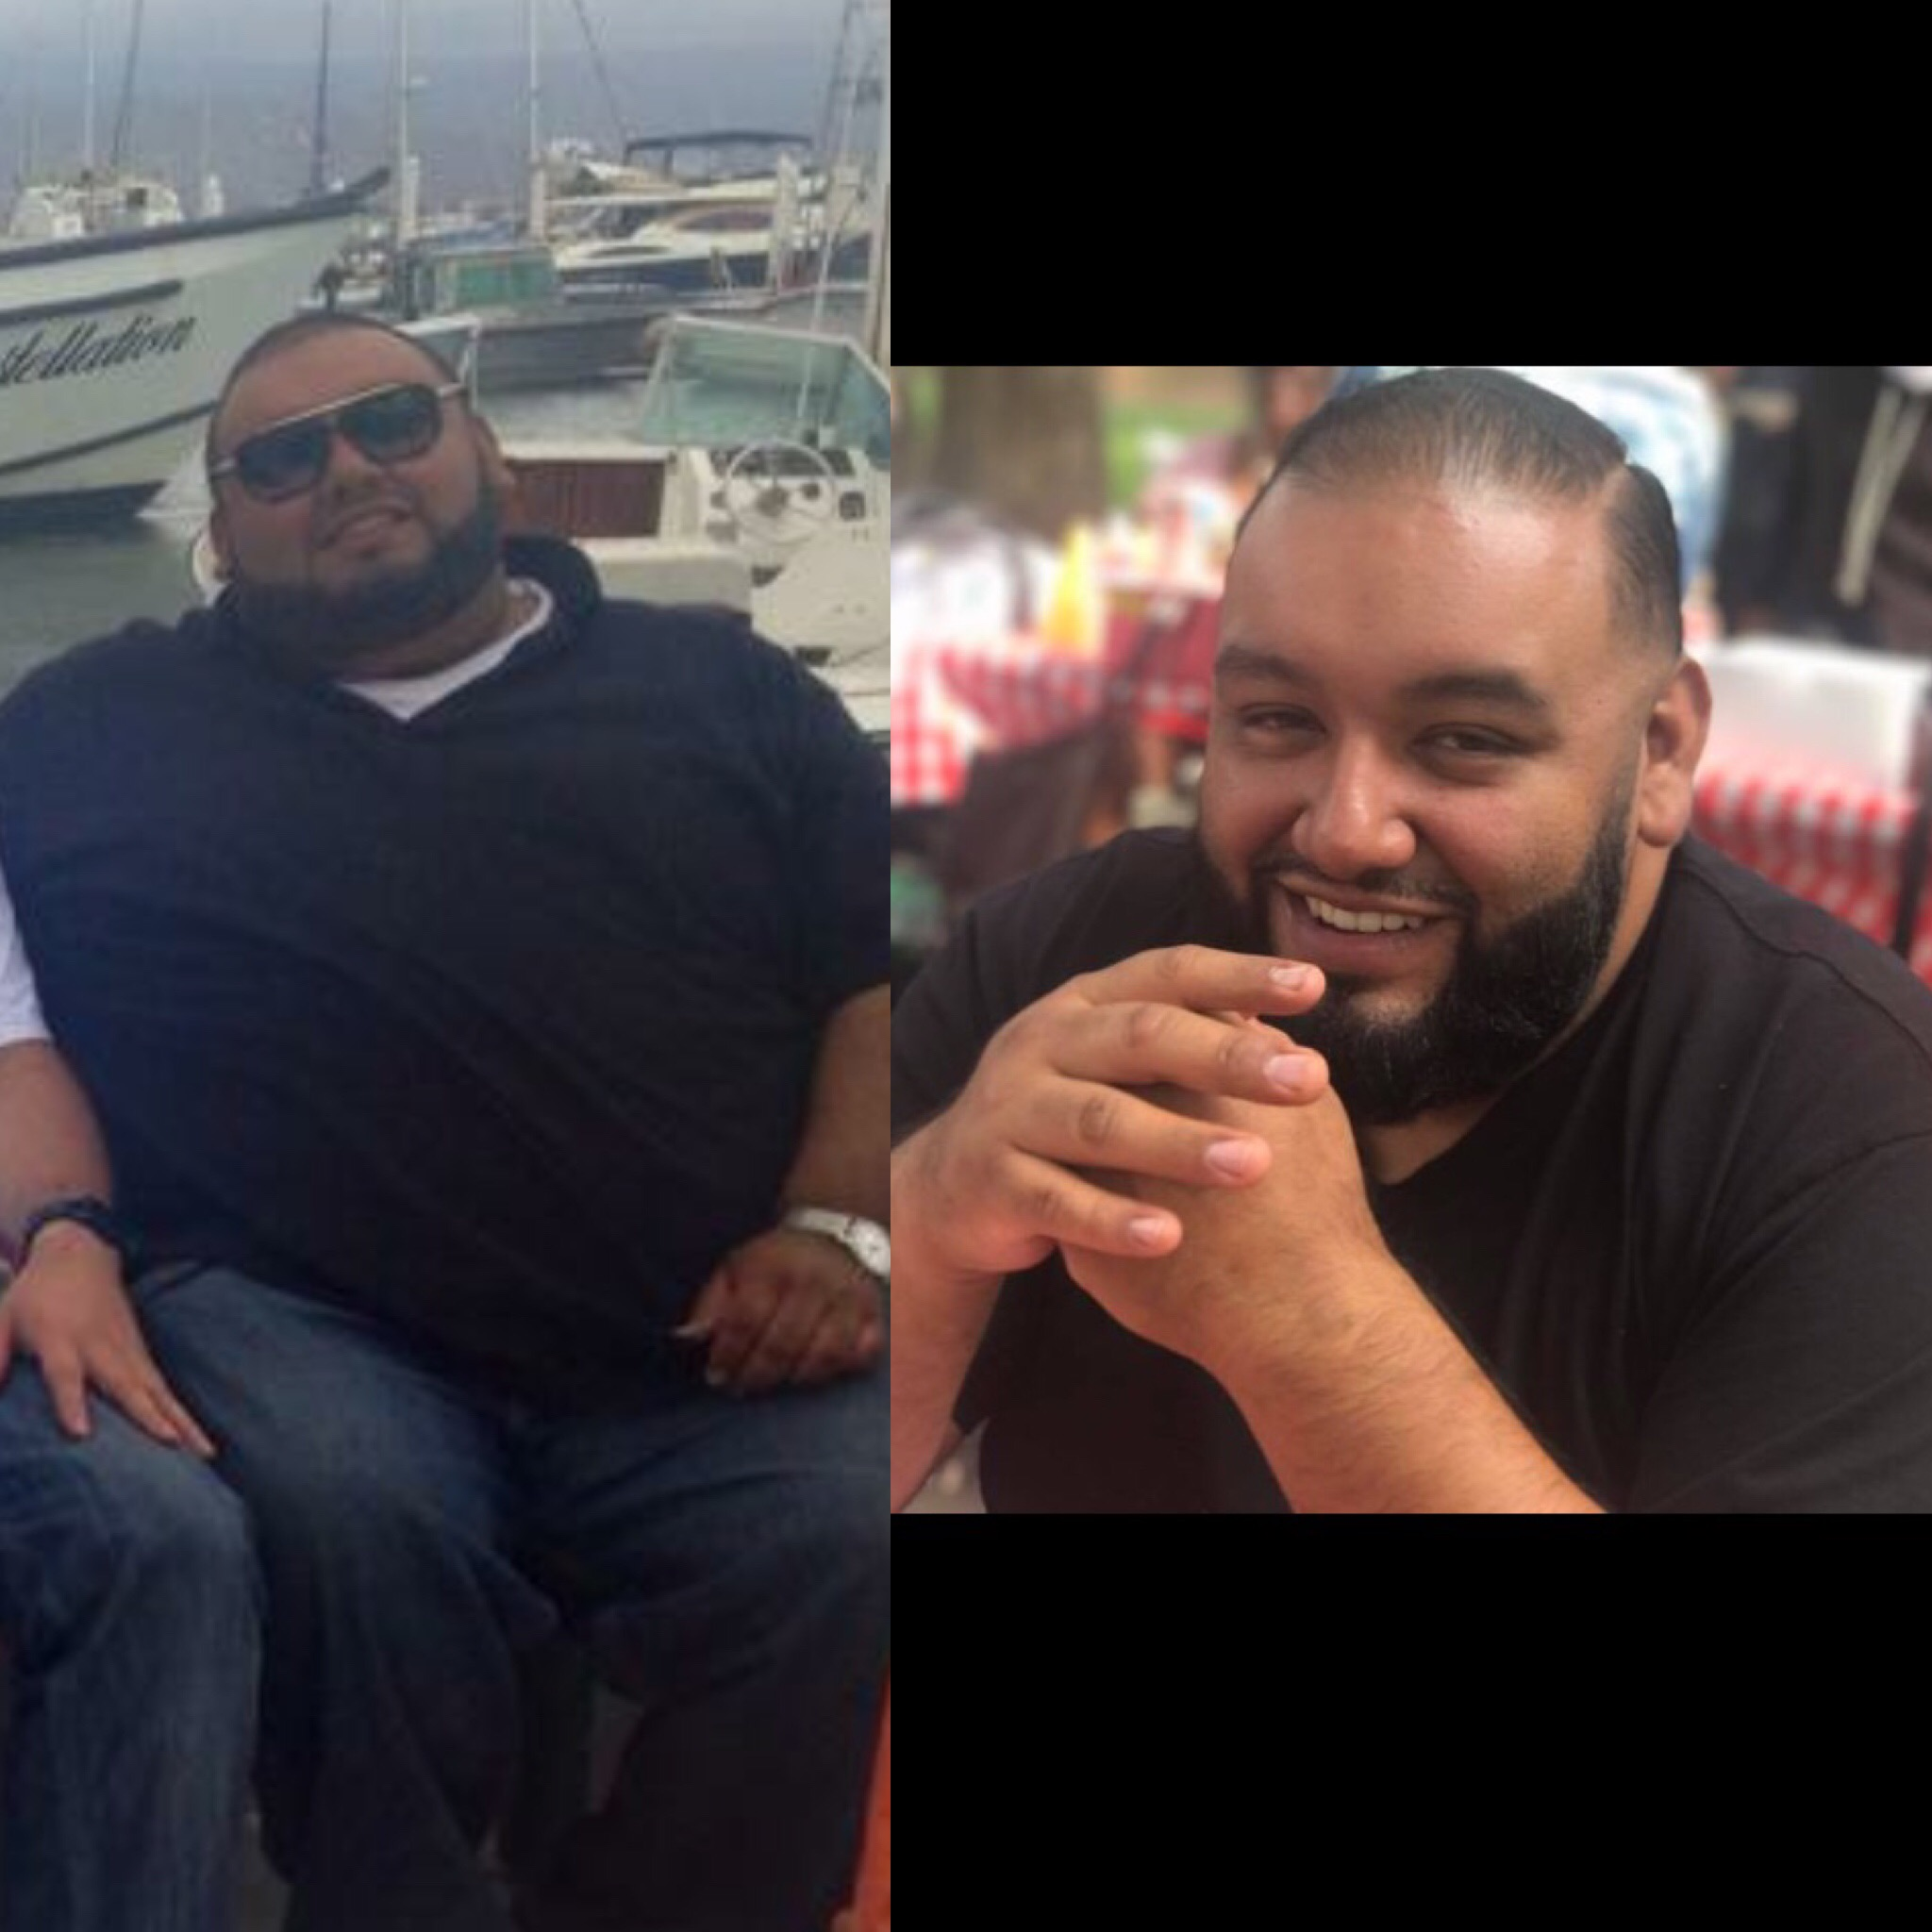 8 Month Training - Alberto M. is hands down one of my best clients. I helped him diet through three vacations and every Raiders home game lol. We started at 330 lbs, and now currently at 285 lbs. He has changed his whole lifestyle into a positive reality of what food actually is.